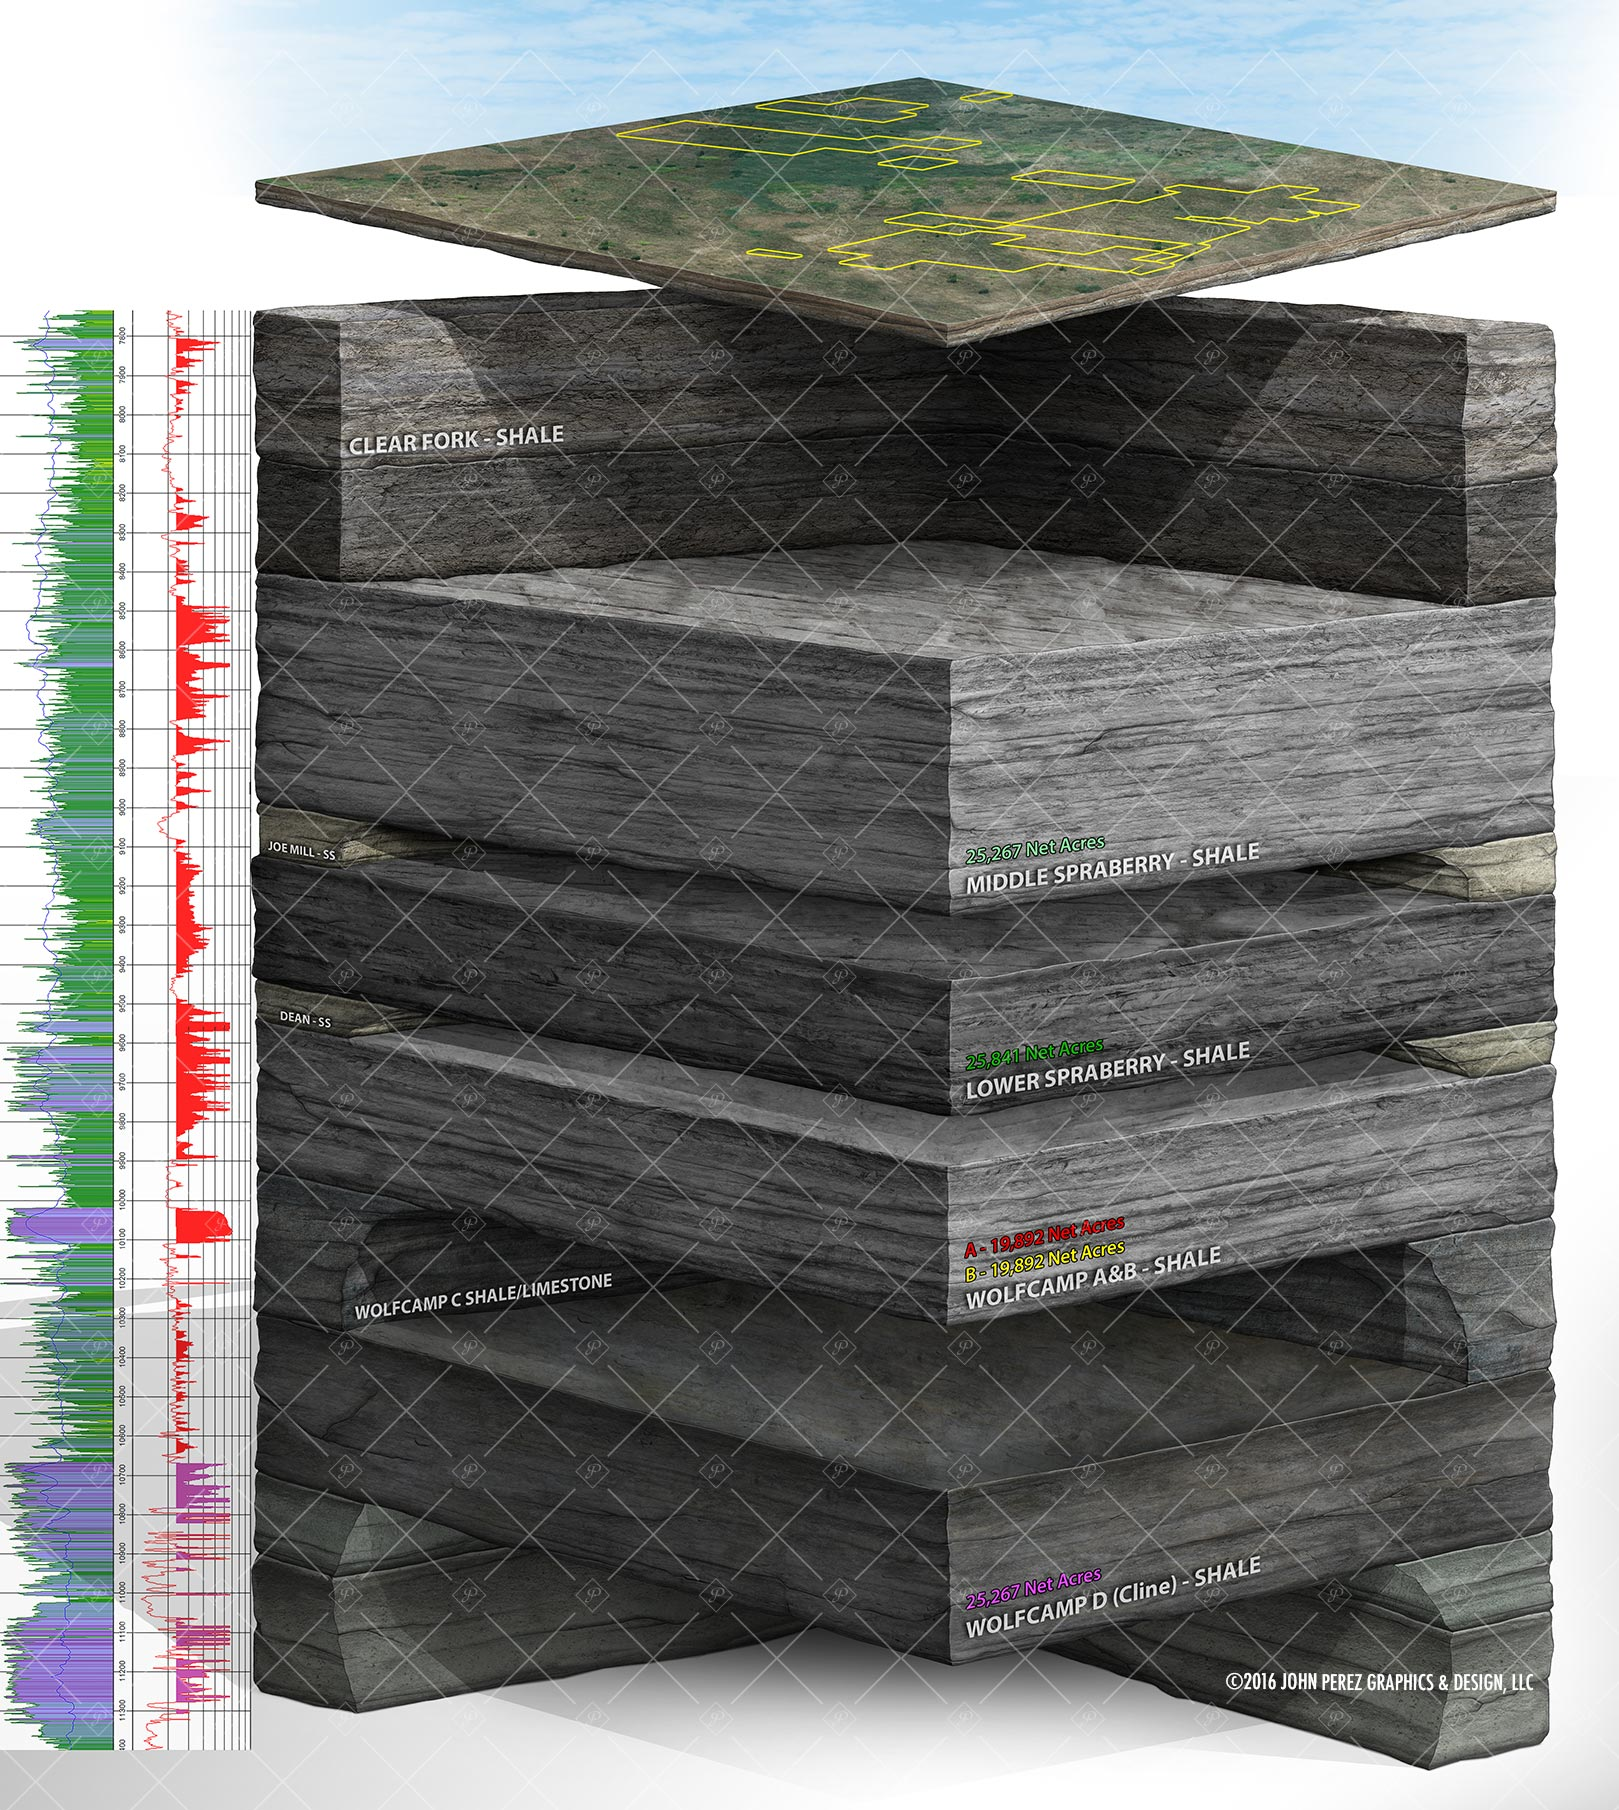 Permian Basin Stacked Pay Schematic, drilling geology, oil and gas graphics, oil and gas schematics, permian basin, john perez graphics, Permian Basin Map, geology illustration